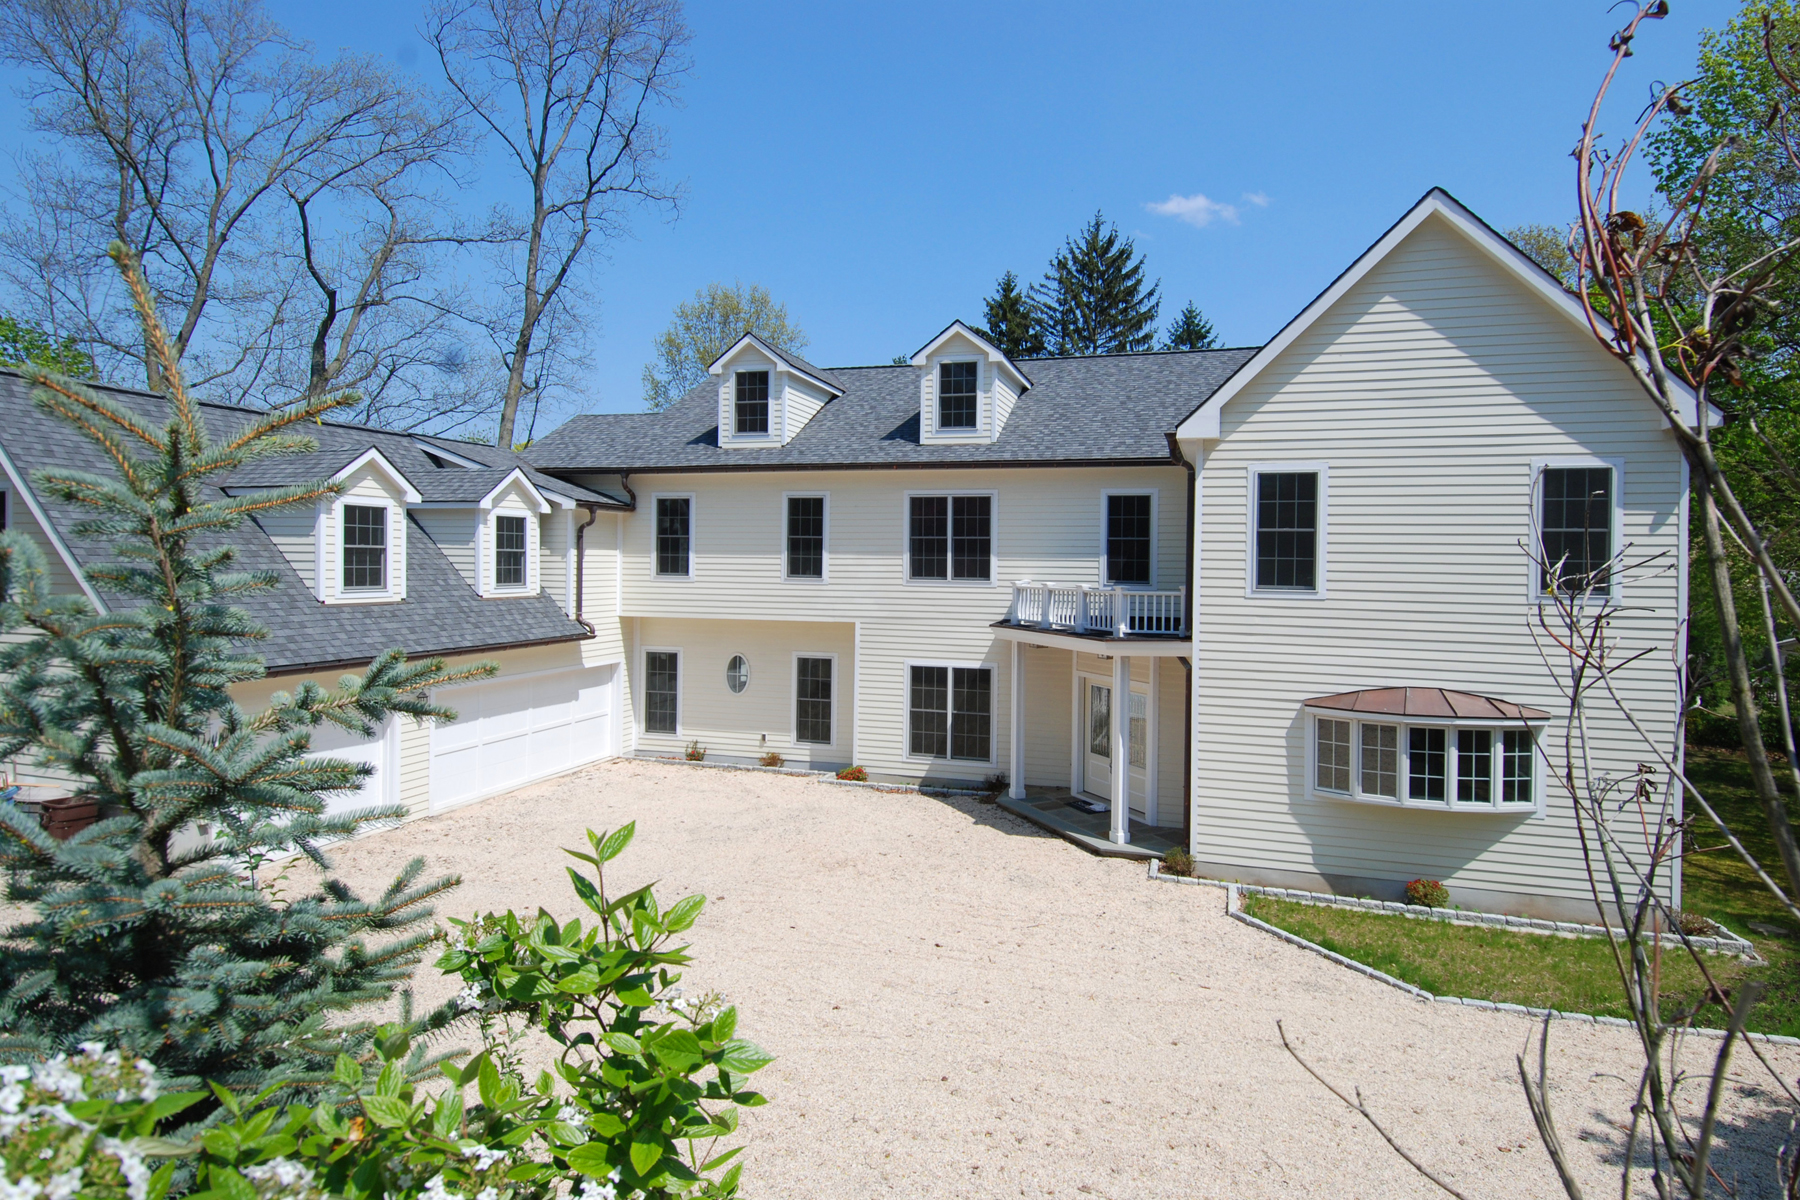 rentals property at Larchmont Gardens Colonial